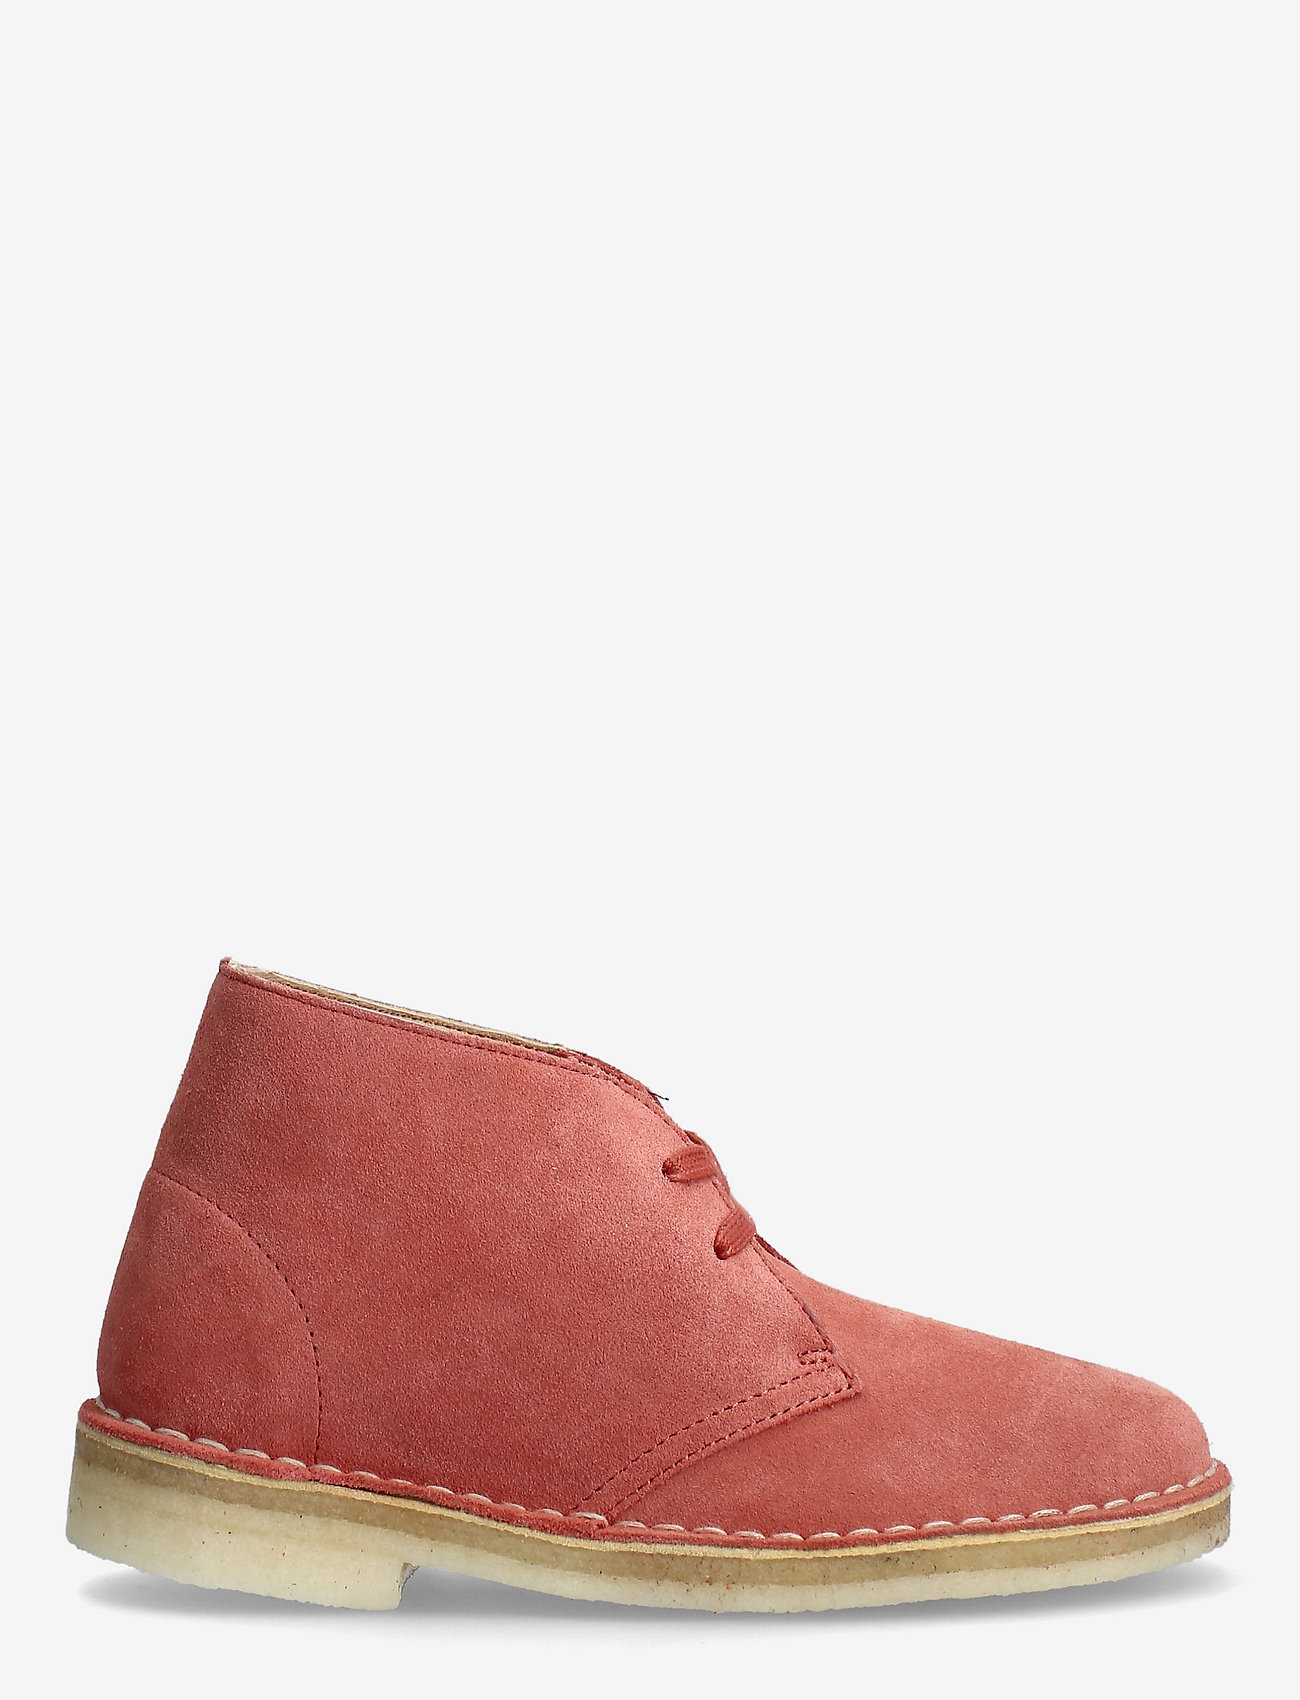 Clarks Originals - Desert Boot. - platta ankelboots - dark blush sde - 1